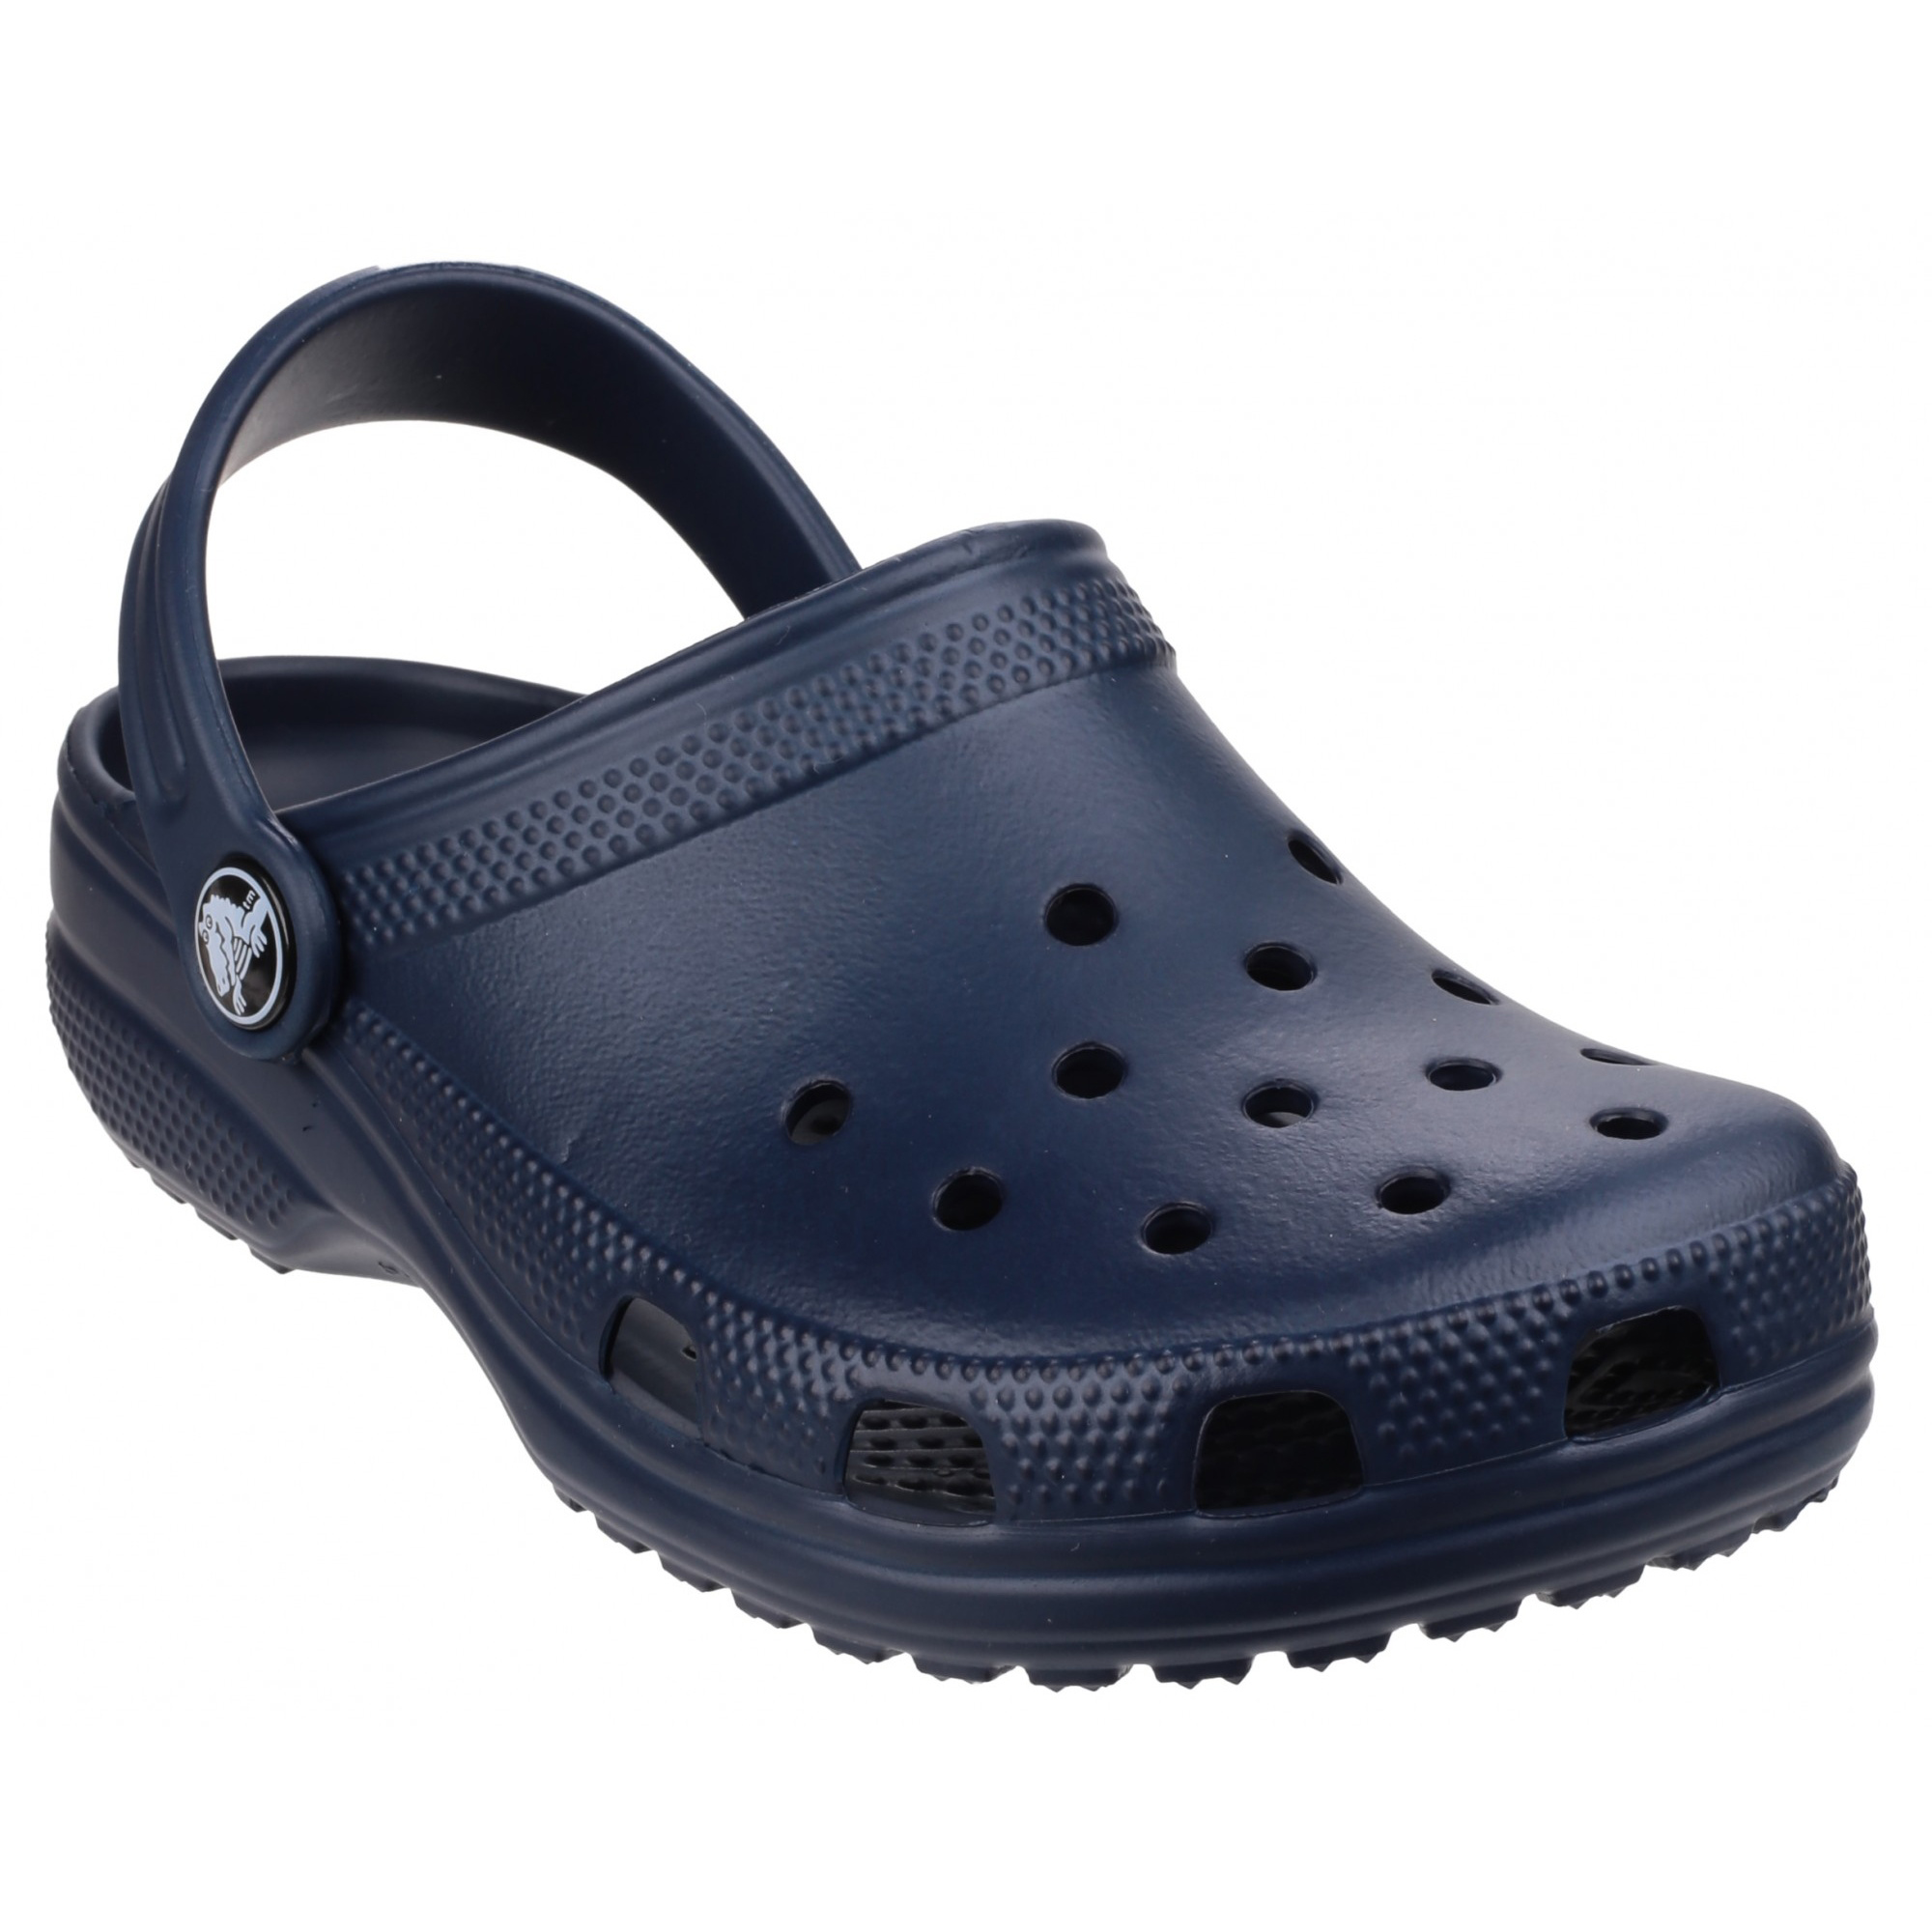 Kids' Crocs. Showing 48 of 85 results that match your query. Search Product Result. Product - Crocs Kids Classic Clog White Flat Shoe - 9M. Reduced Price. Product Image. Product - Crocs Kids Classic Clog Ltd New Mint Clogs - 6M. Reduced Price. Product Image. Price $ 99 - $ Product Title. Crocs Kids Classic Clog Ltd New Mint.